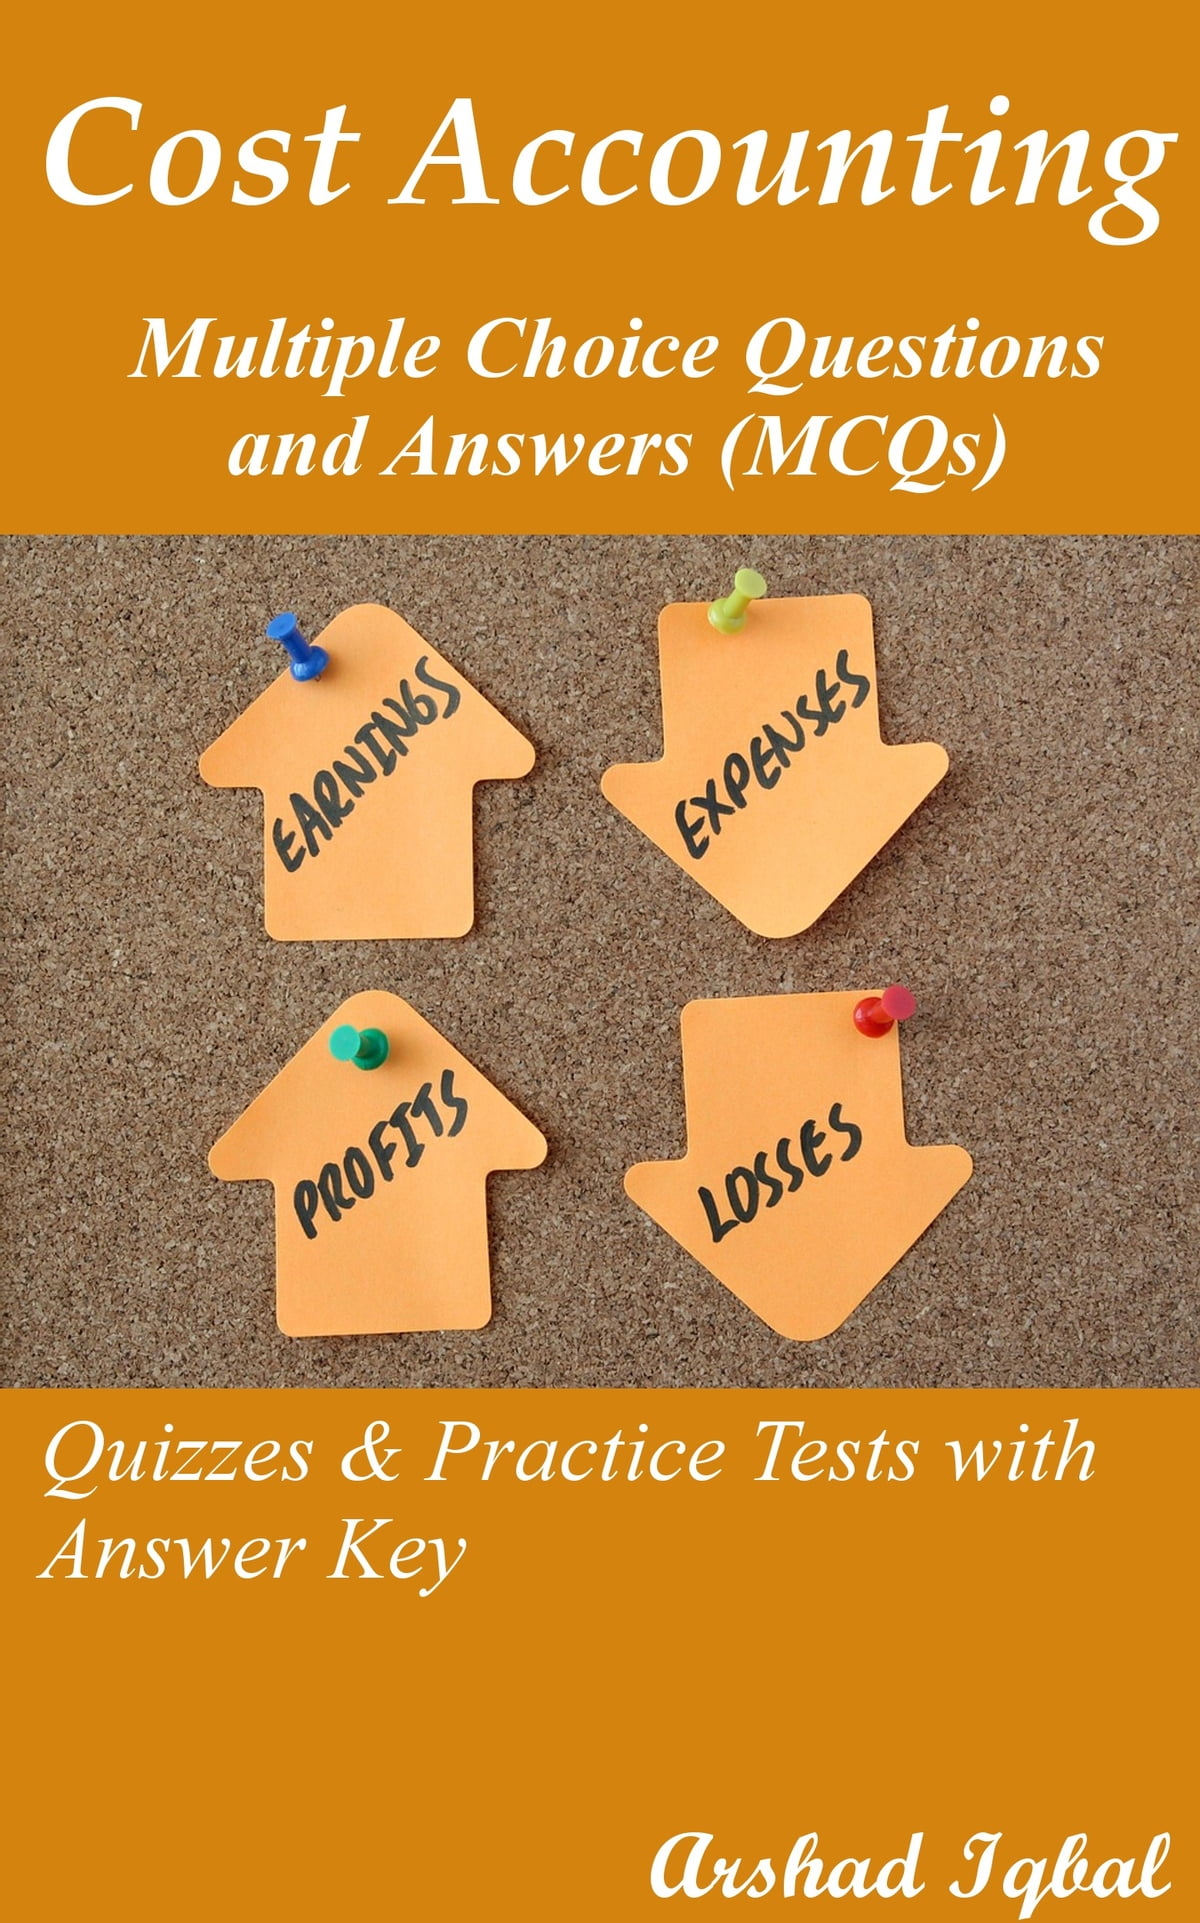 Cost Accounting Multiple Choice Questions And Answers Mcqs Quizzes Practice Tests With Answer Key Cost Accounting Worksheets Quick Study Guide Ebook By Arshad Iqbal 9781310407437 Rakuten Kobo United States